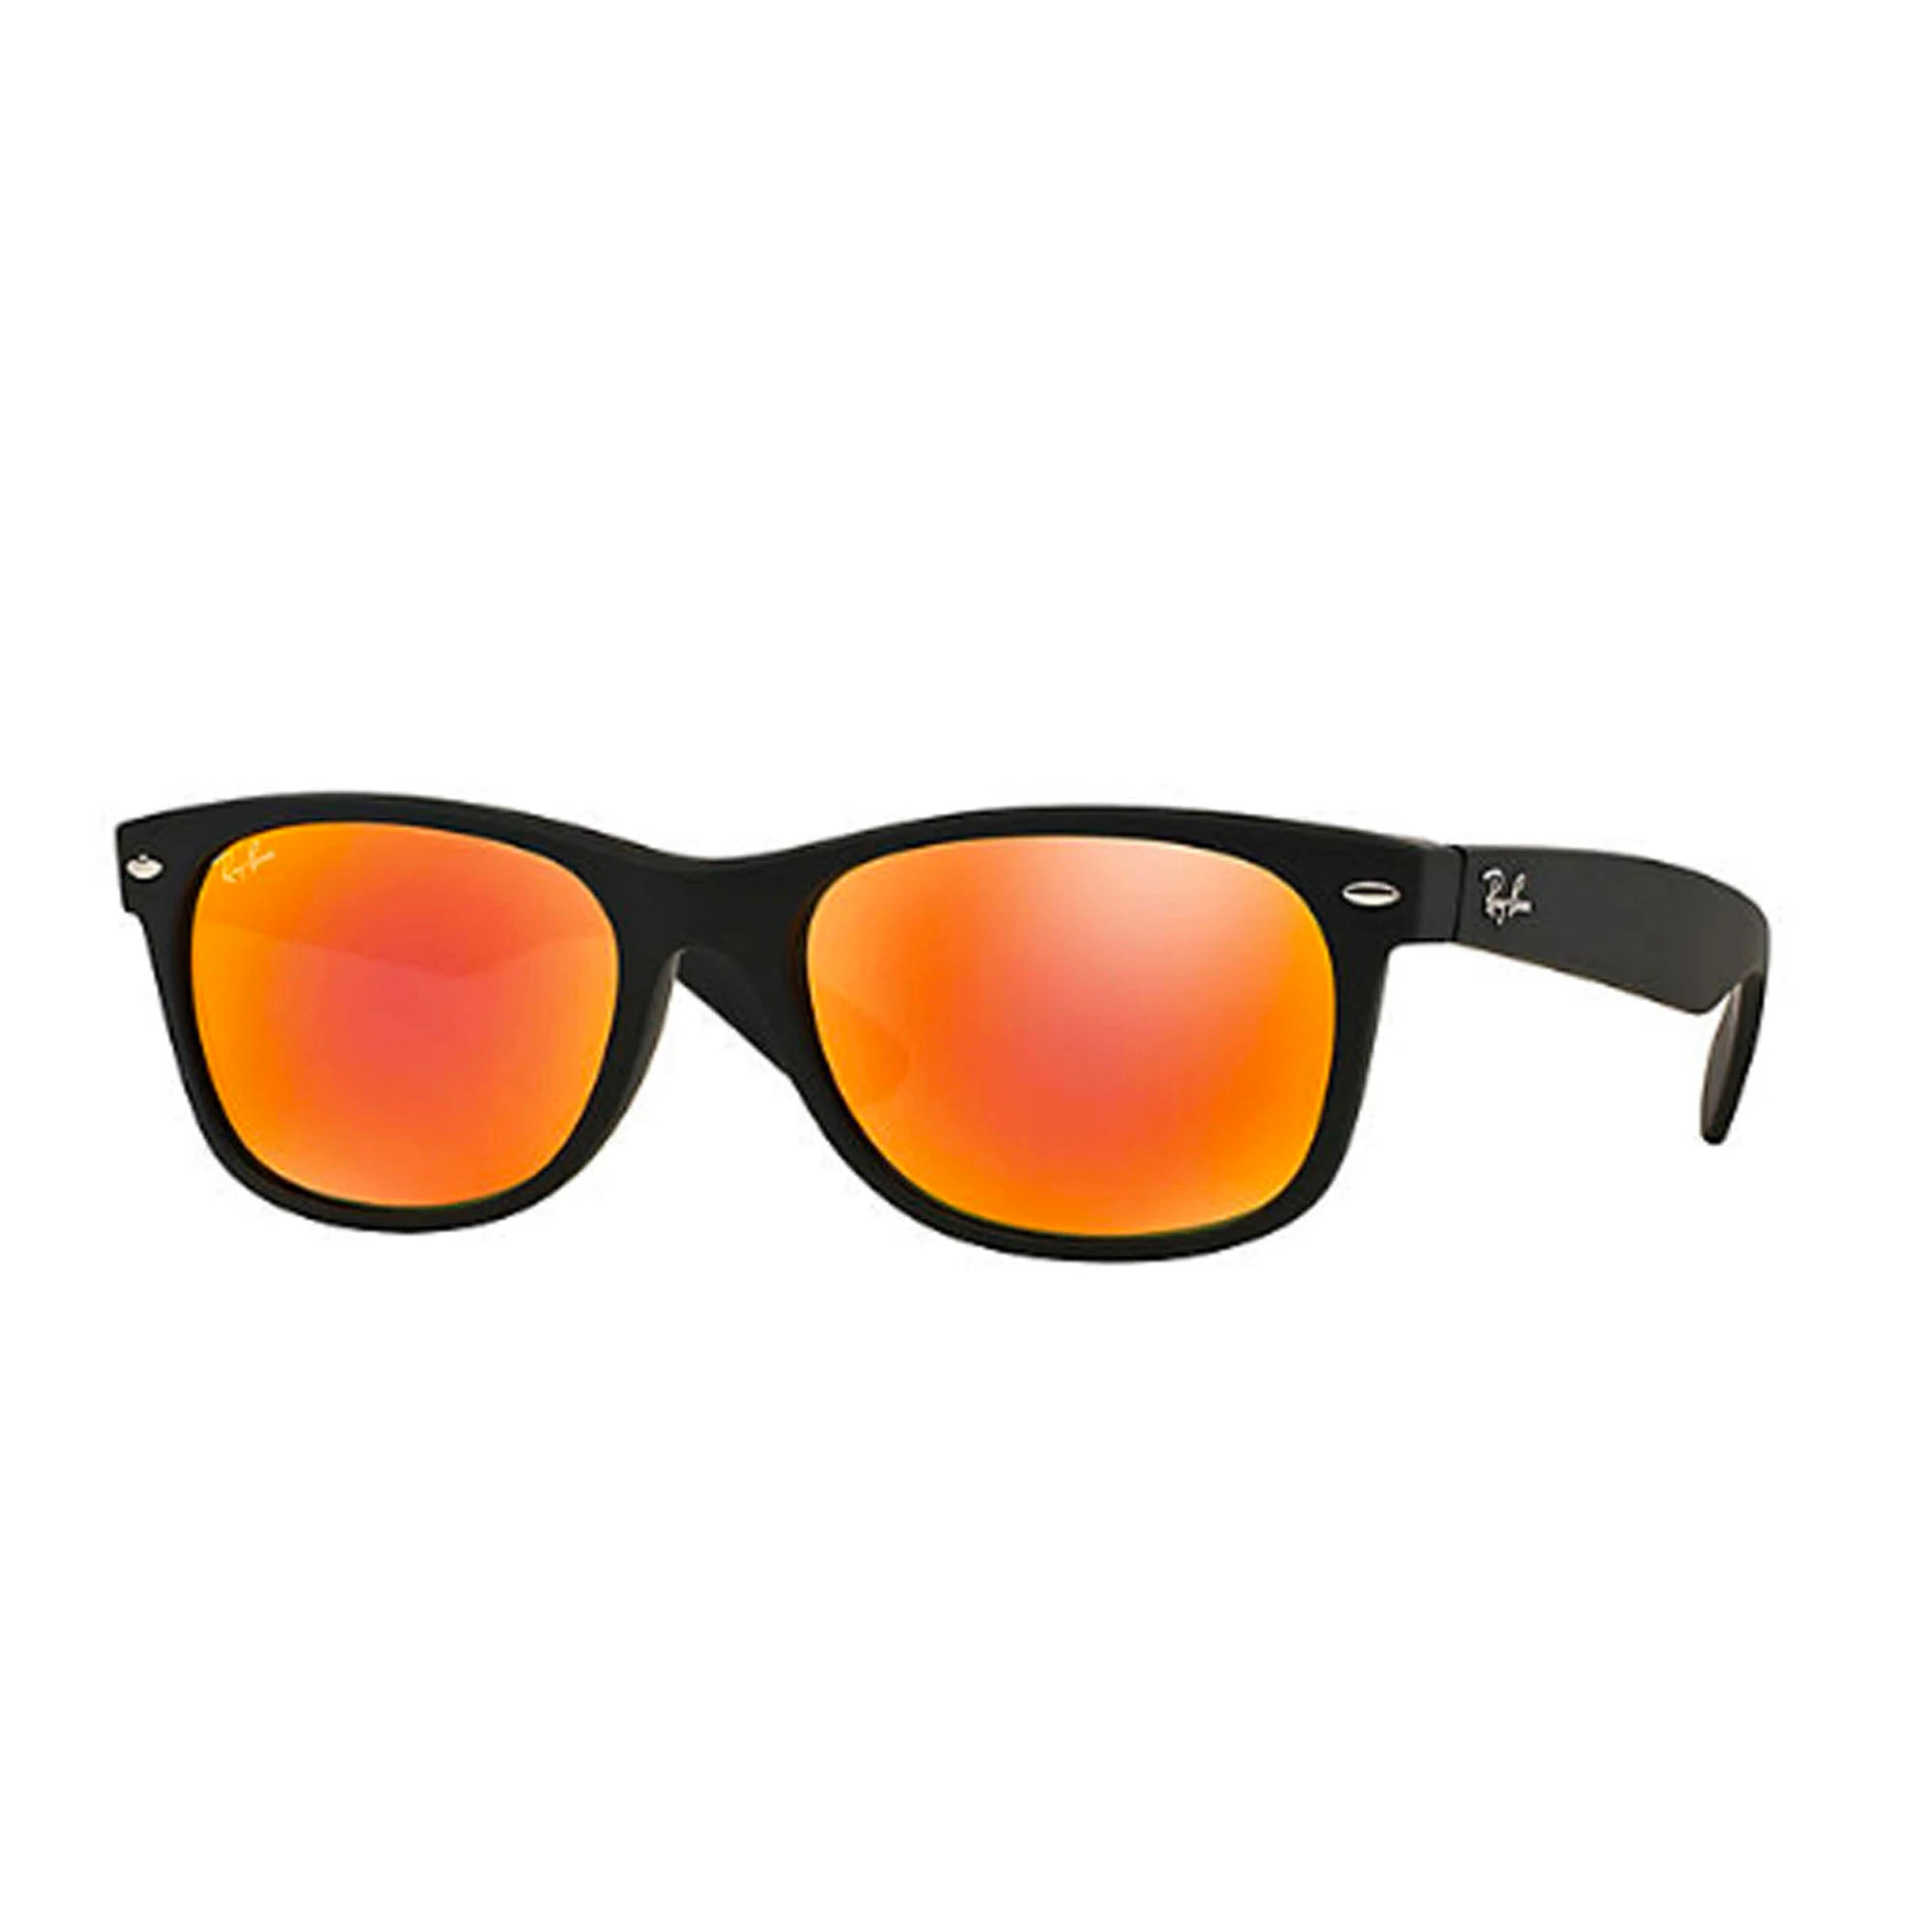 Ray-Ban New Wayfarer Men's Sunglasses - Rubber Black/Mirror Flash Orange